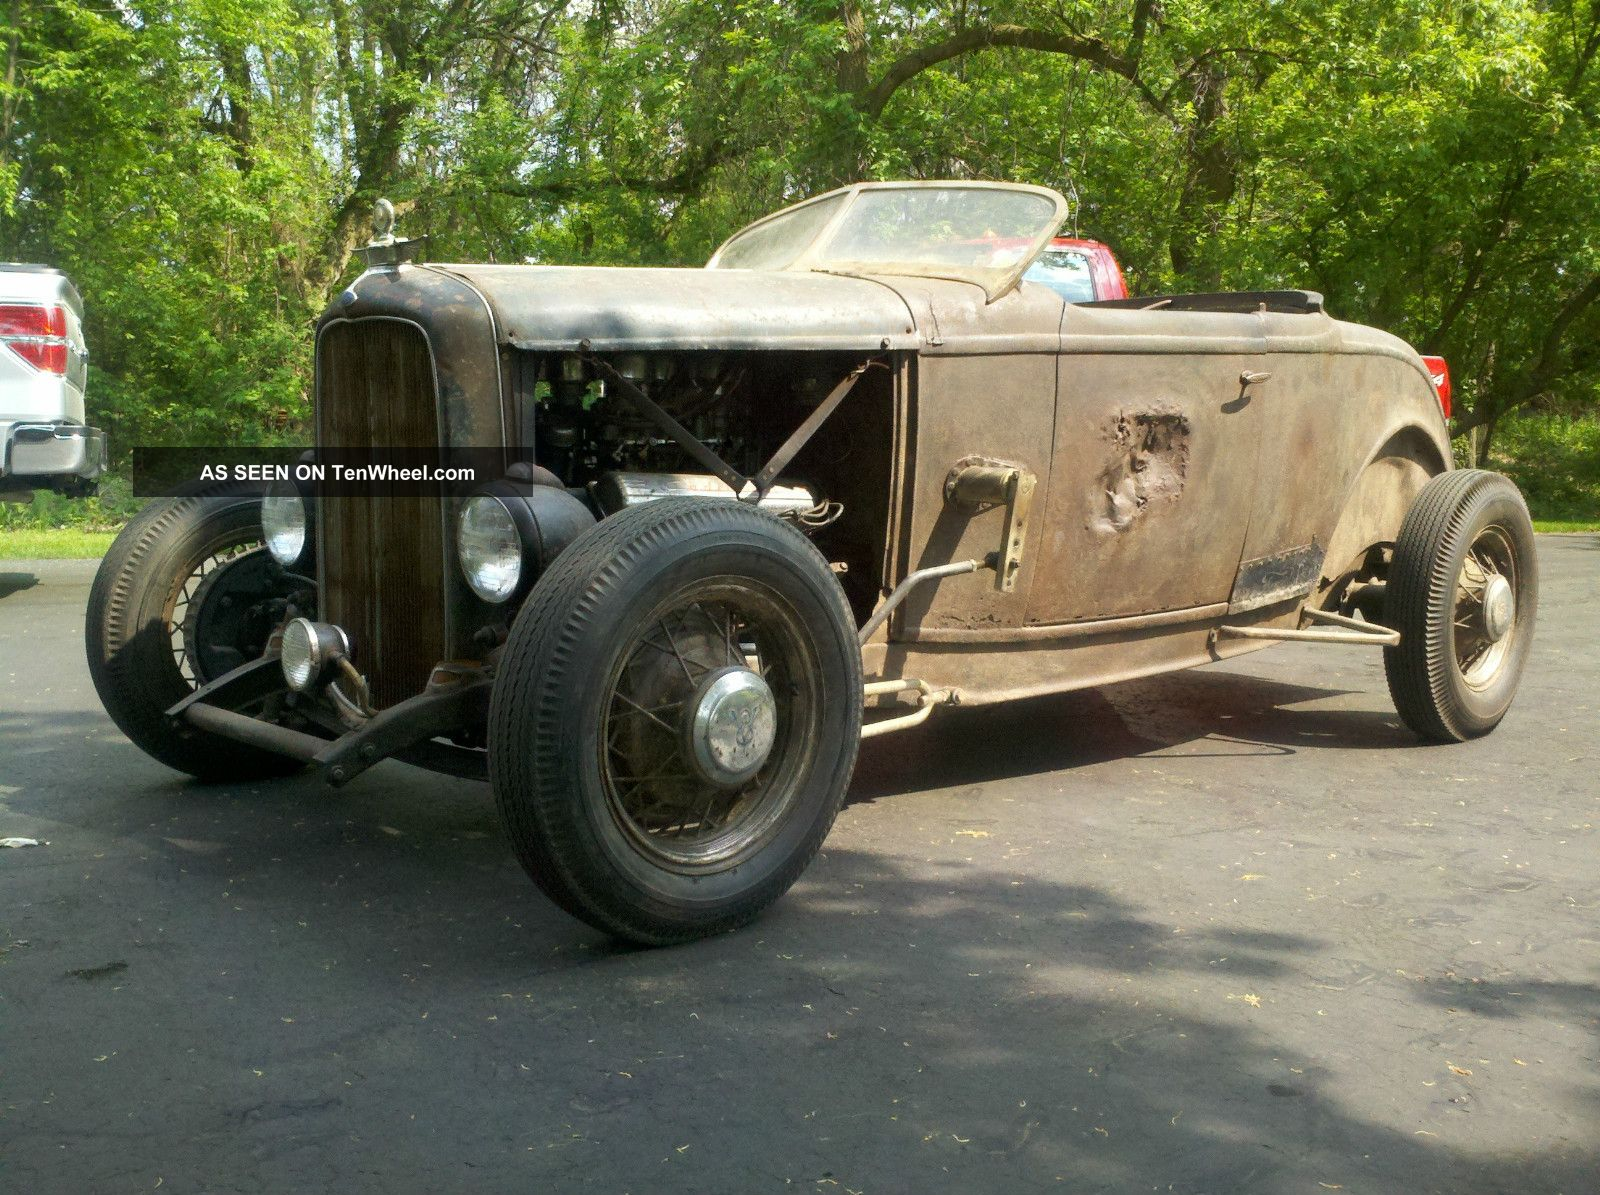 1932 Ford Roadster Rat Rod Hot Rod Scta Other photo 3